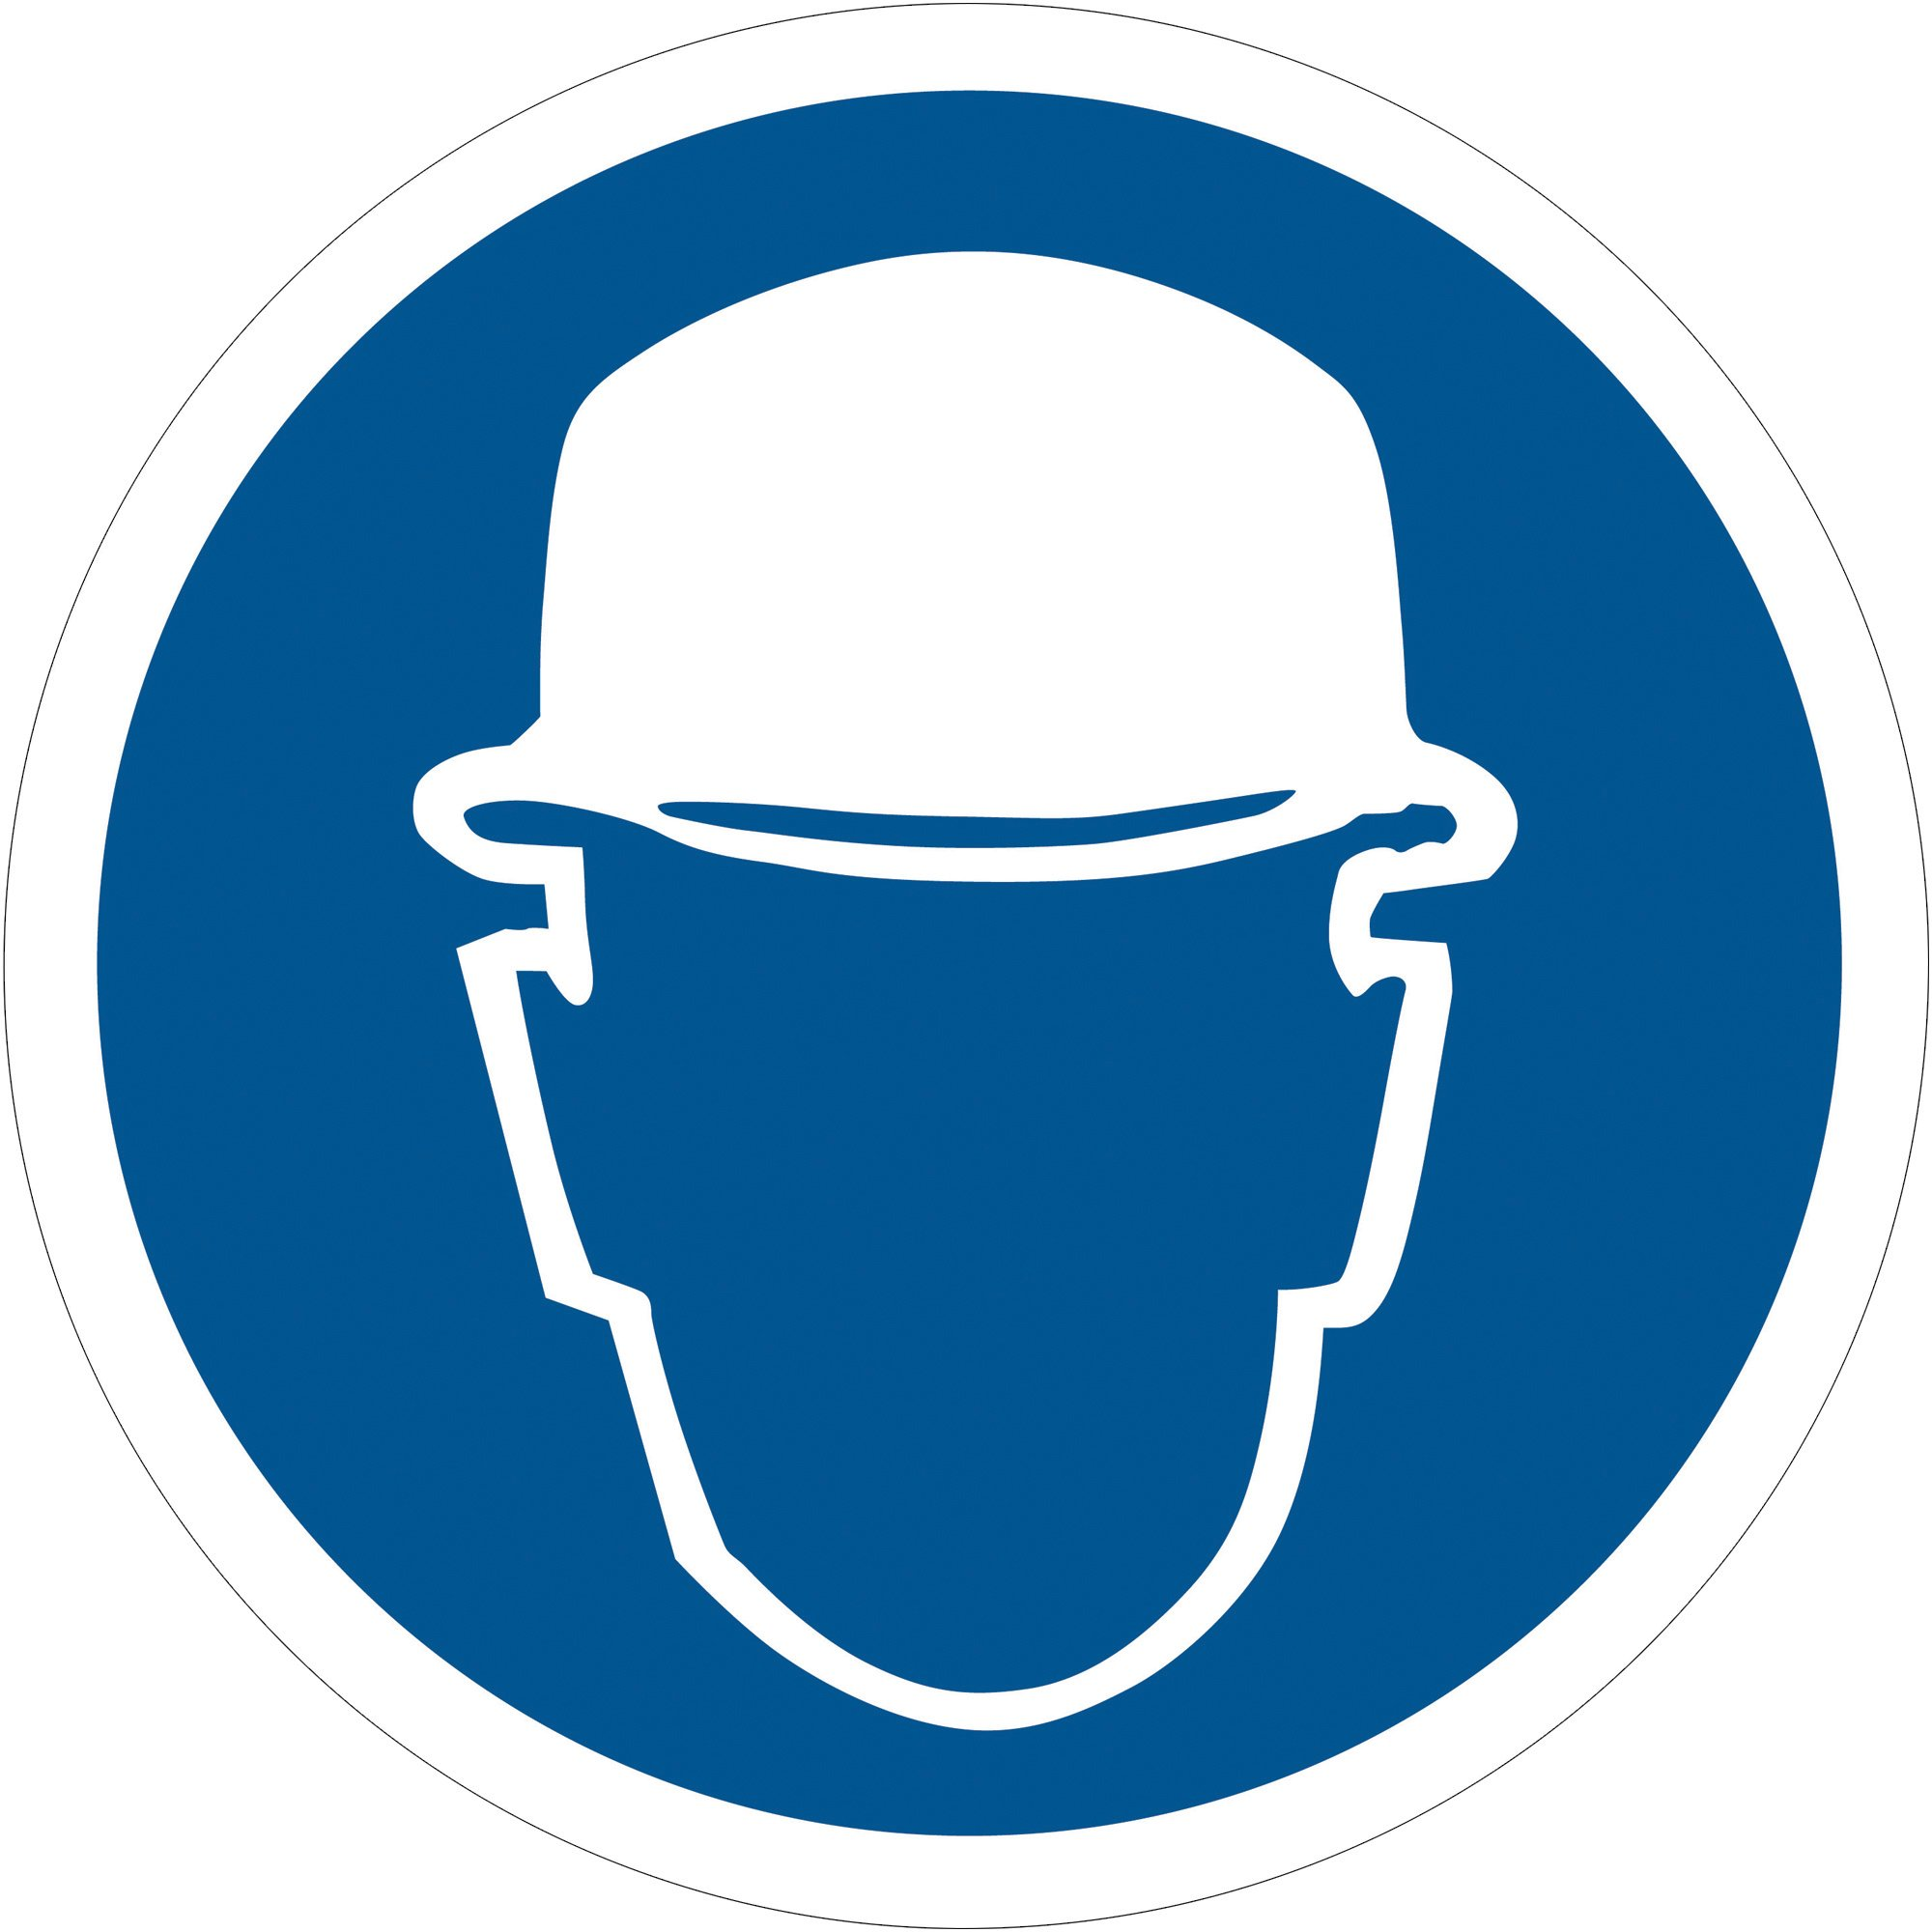 BOX USA BDSL512 Tape Logic Wear Head Protection Durable Safety Label, 2'' Circle, Blue/White (1 Roll of 25)